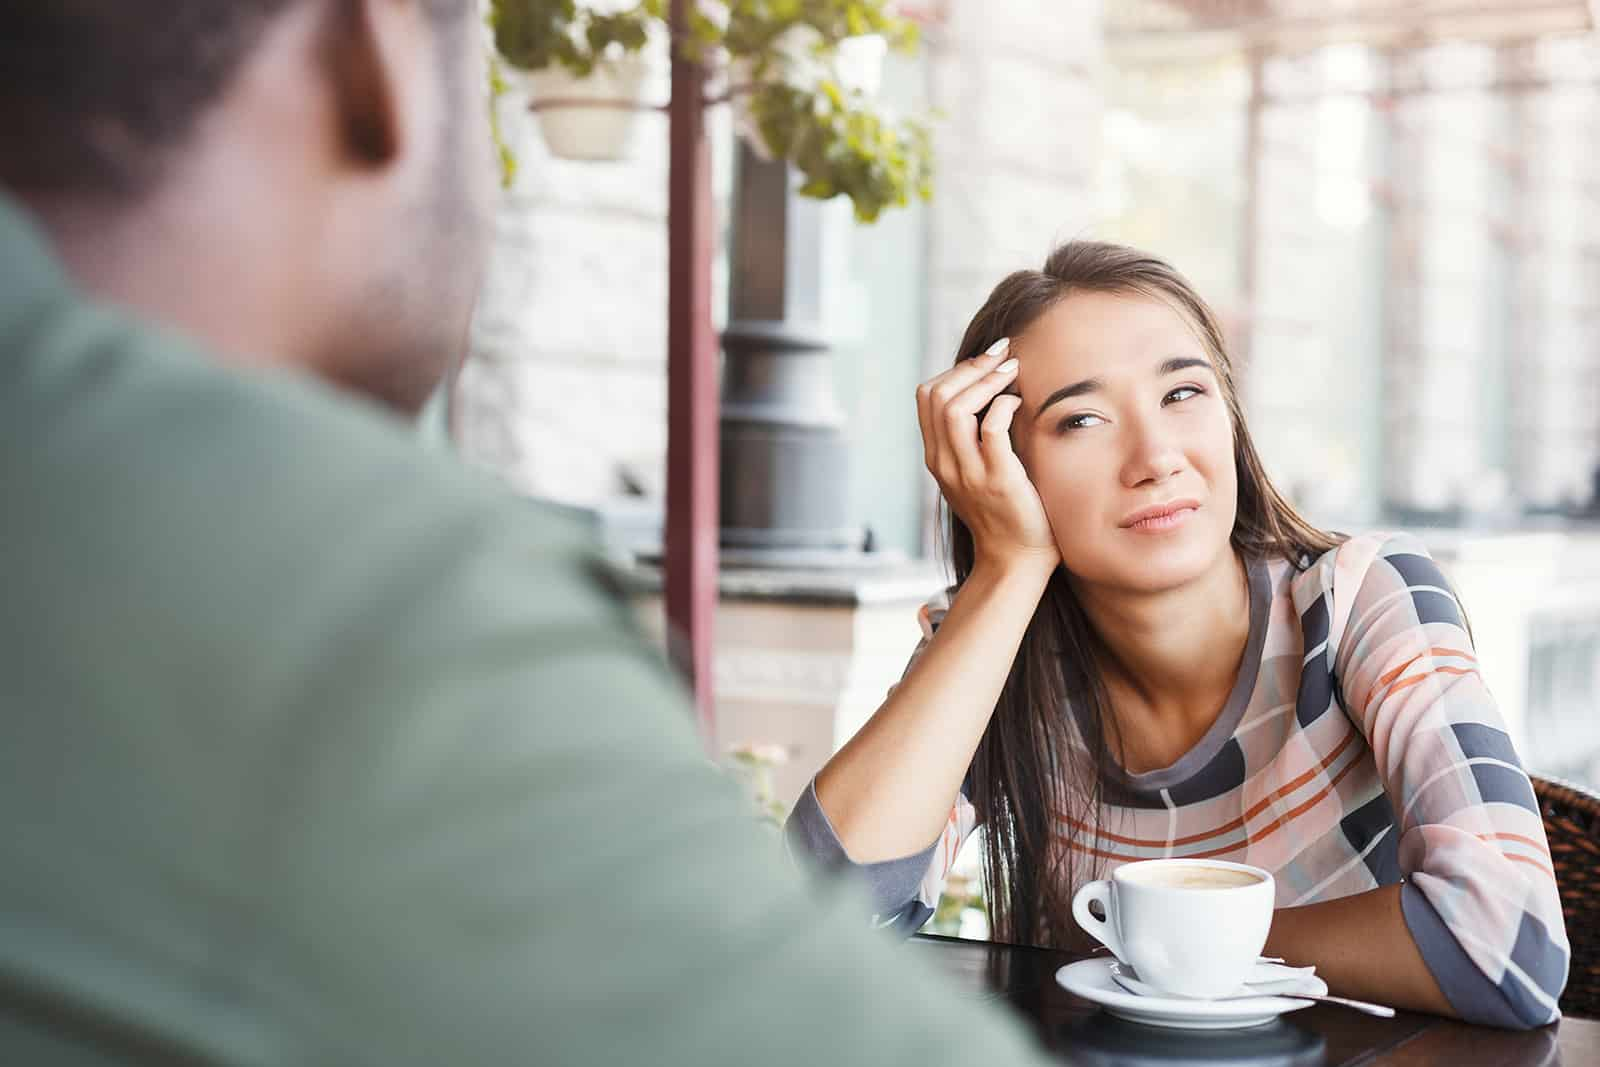 bored woman listening to a clingy guy while drinking coffee together